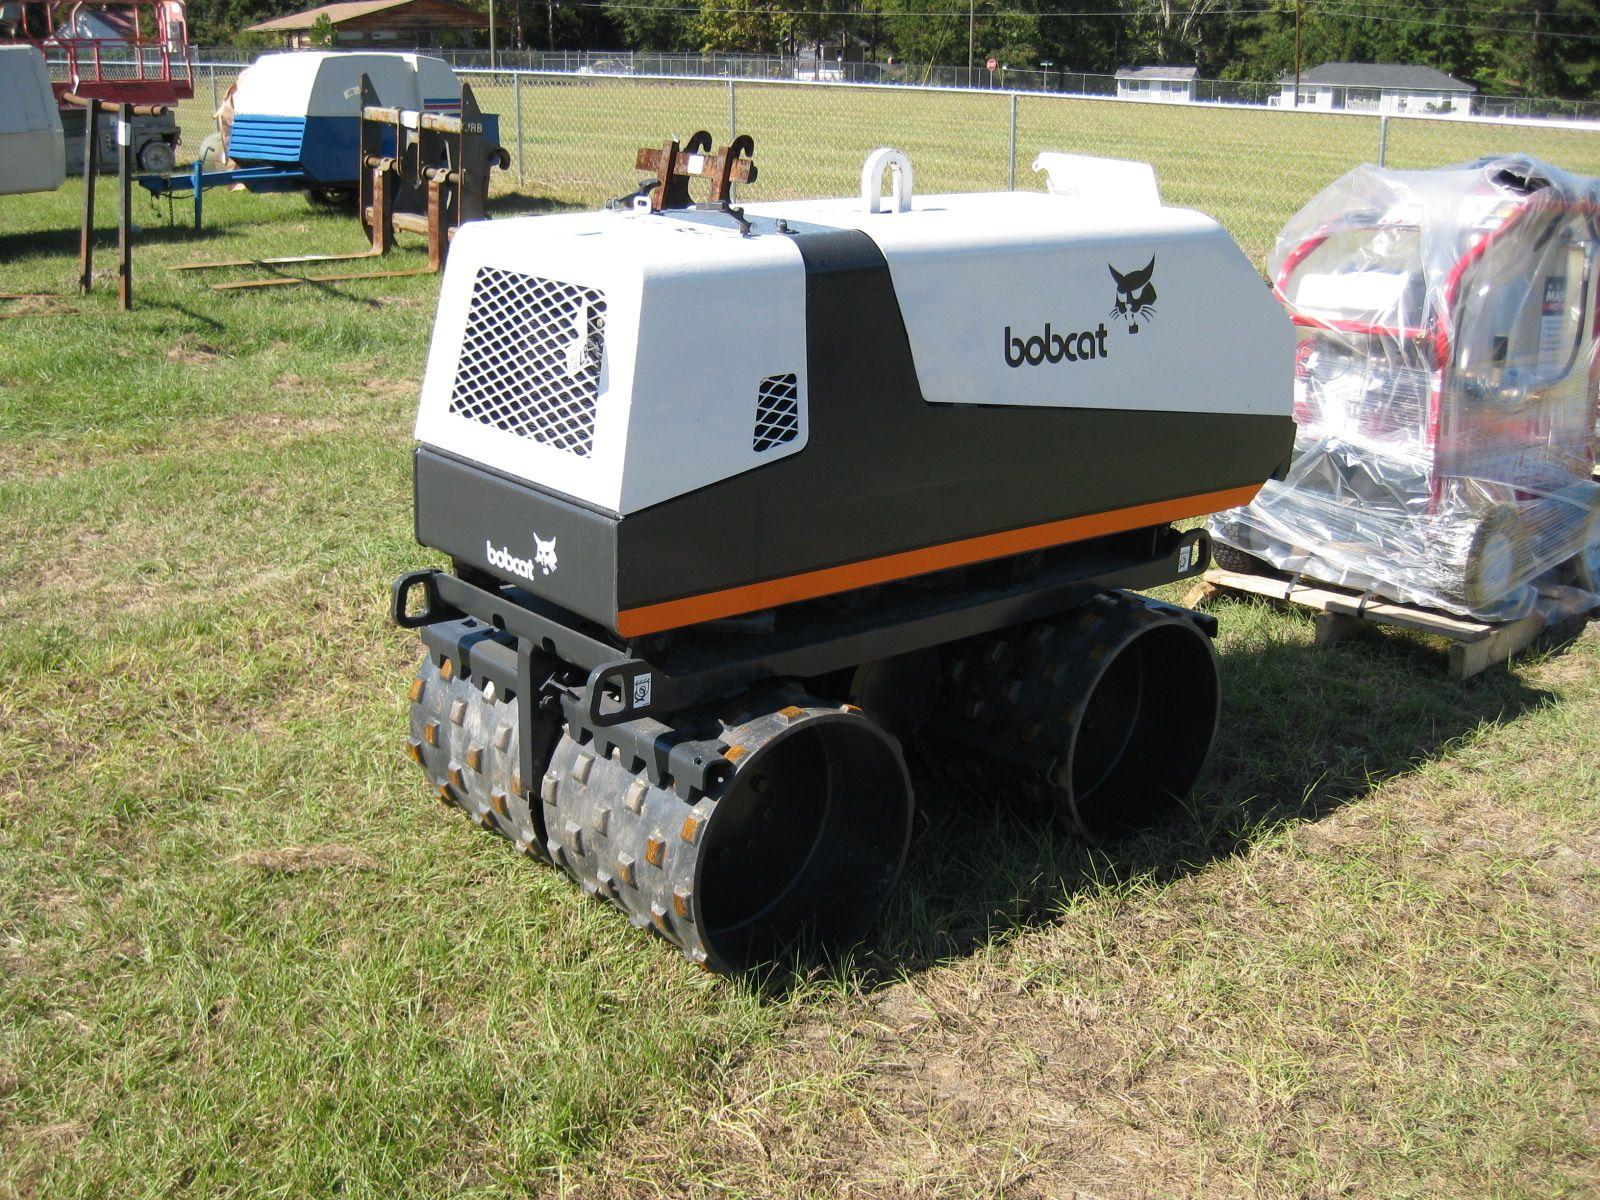 image 1 bobcat ingersoll rand bct 13 trench compactor s n [ 1600 x 1200 Pixel ]